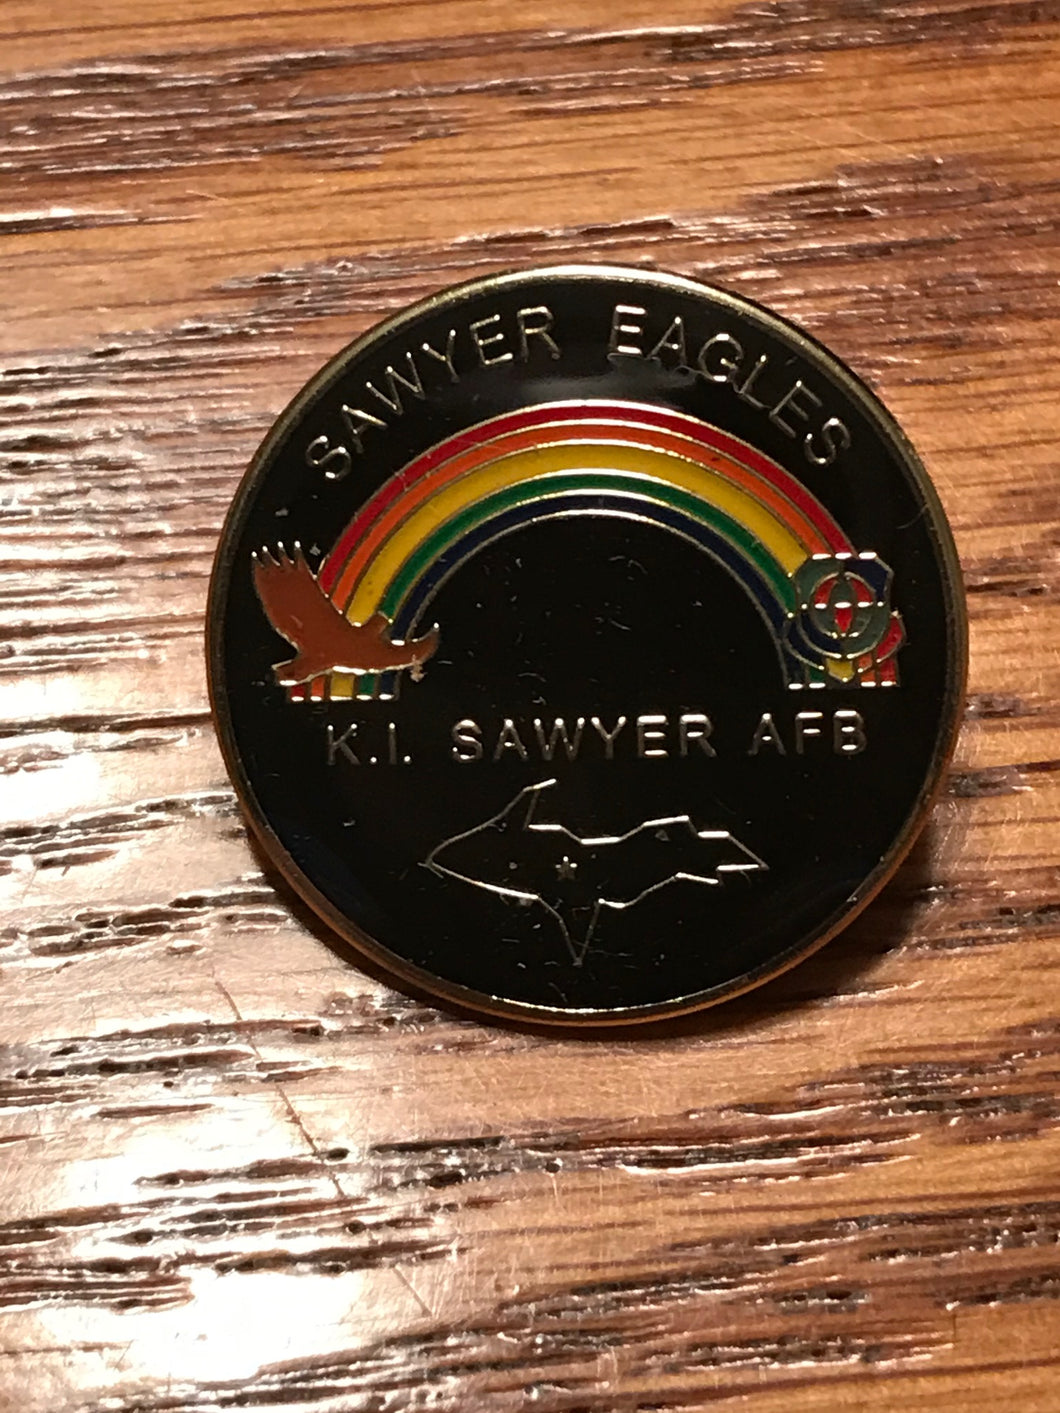 Official K.I. Sawyer Air Force Base Hat Pin